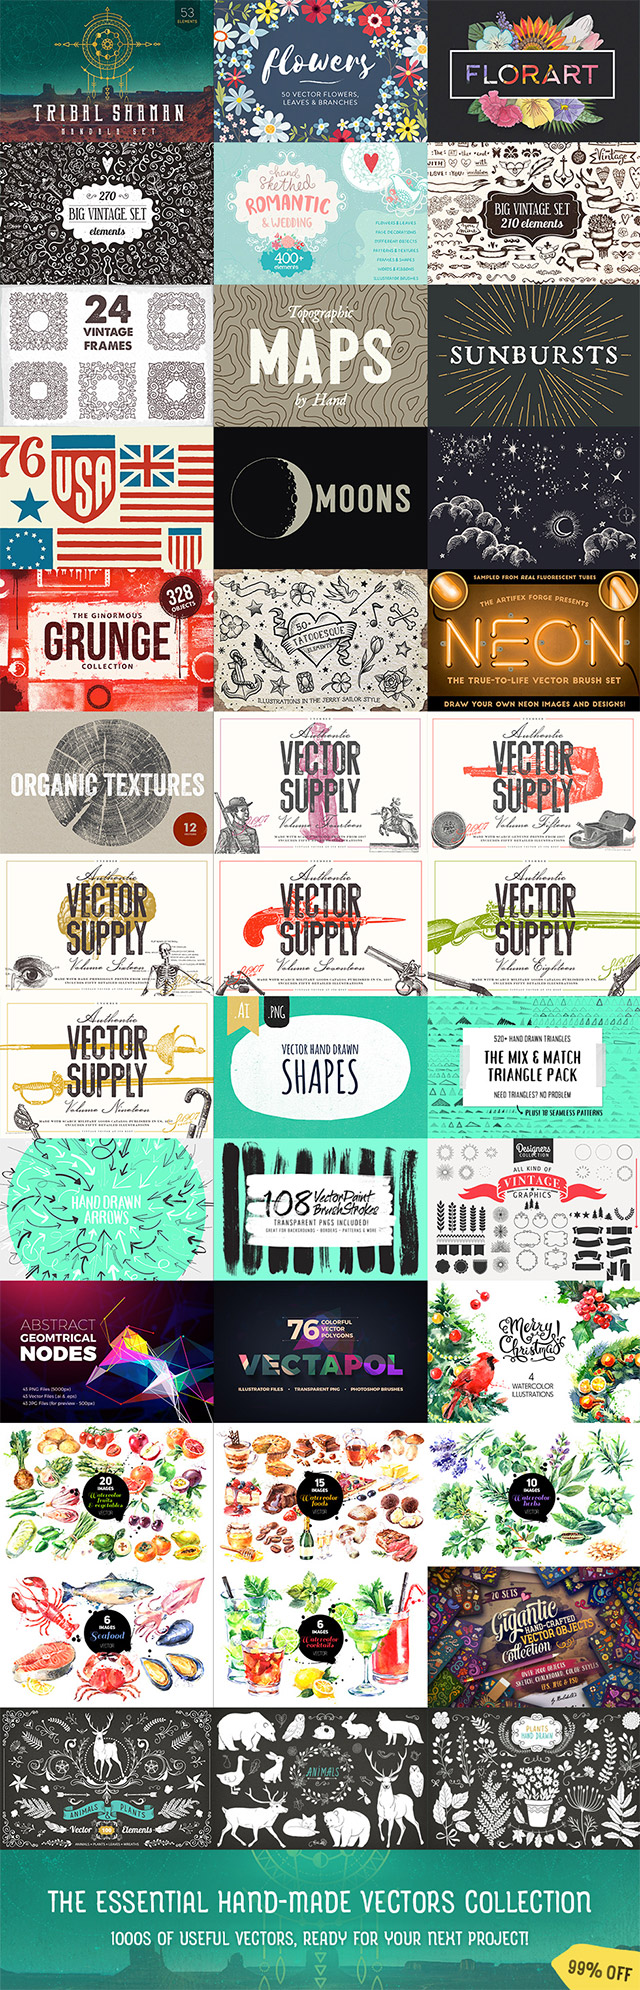 Essential Hand-Made Vectors That You'll Use For Years To Come: 99% Off